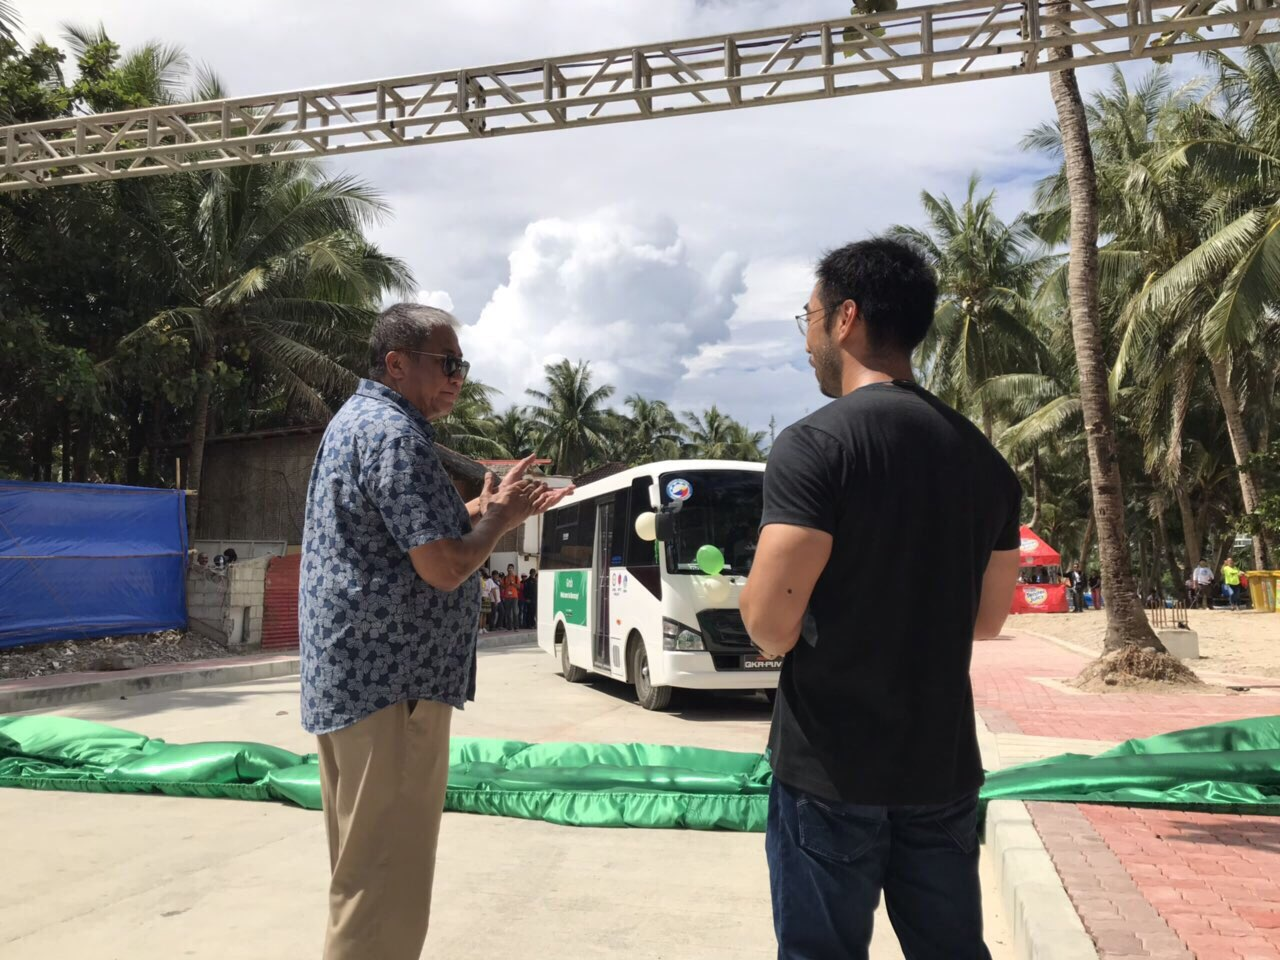 HOP-ON, HOP-OFF. Transportation Secretary Arthur Tugade and Grab Philippines head Brian Cu unveil the new hop-on, hop-off bus in Boracay.